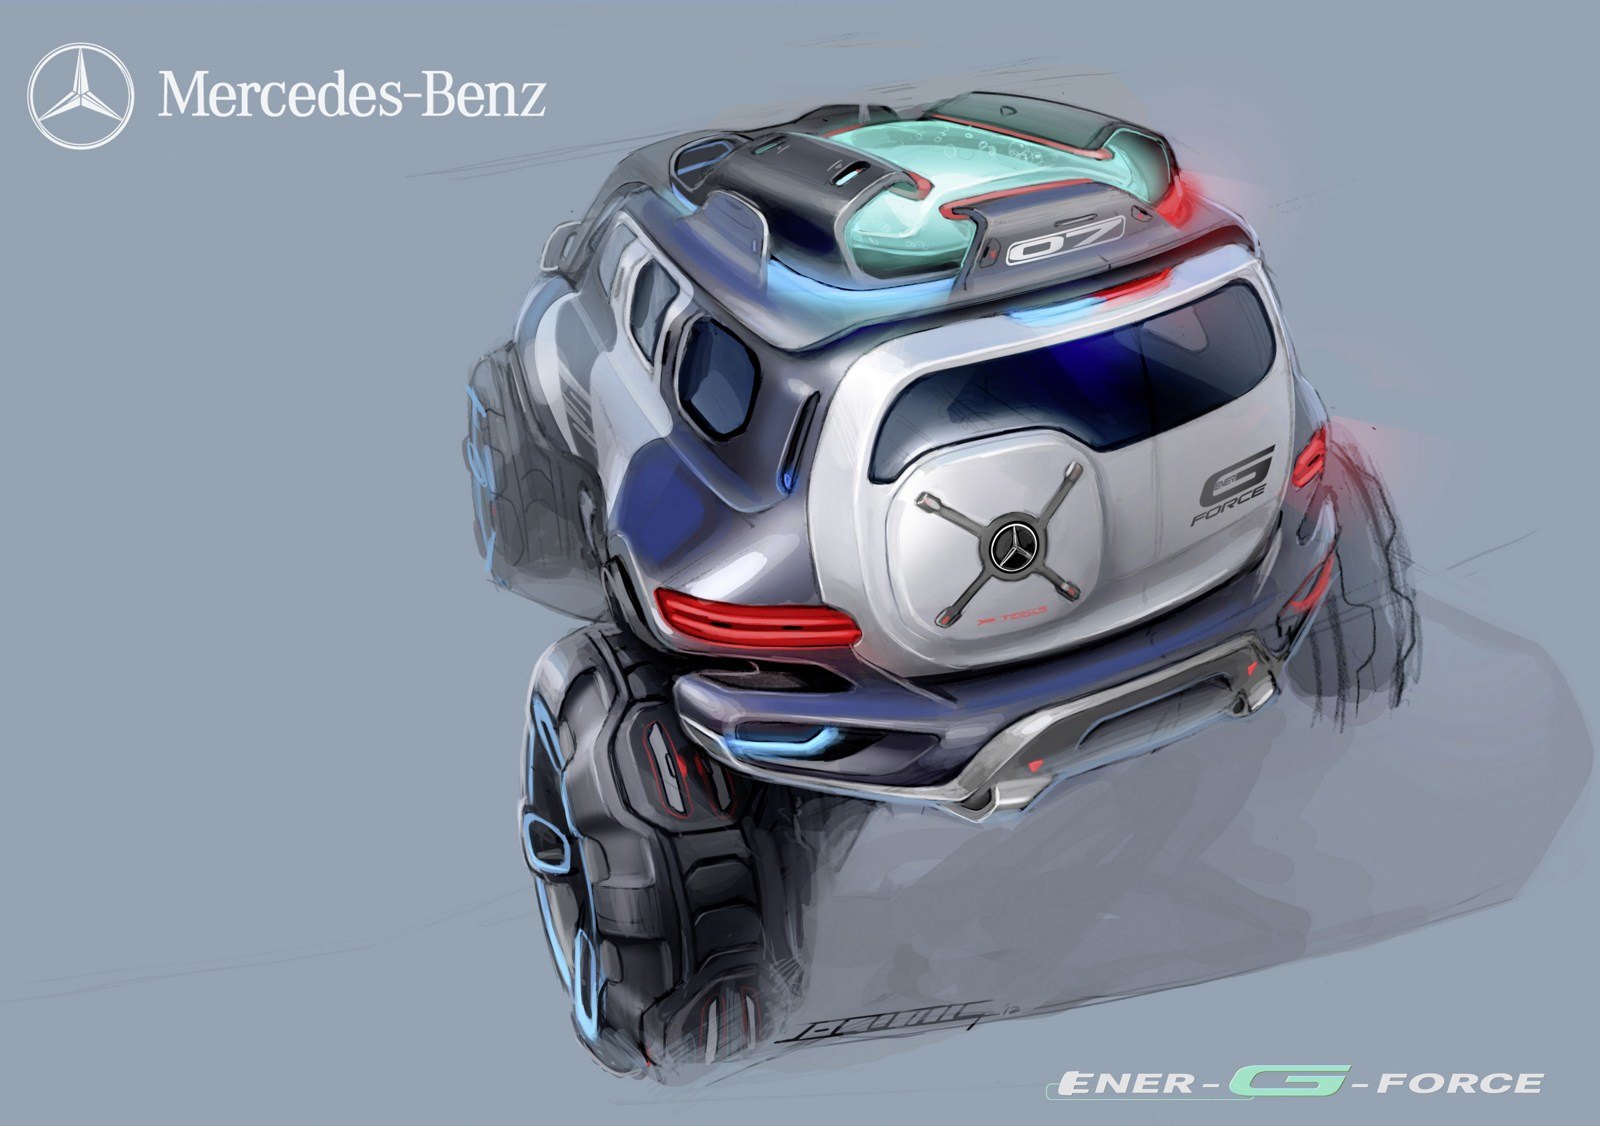 2019 Mercedes Benz 170 photo - 4